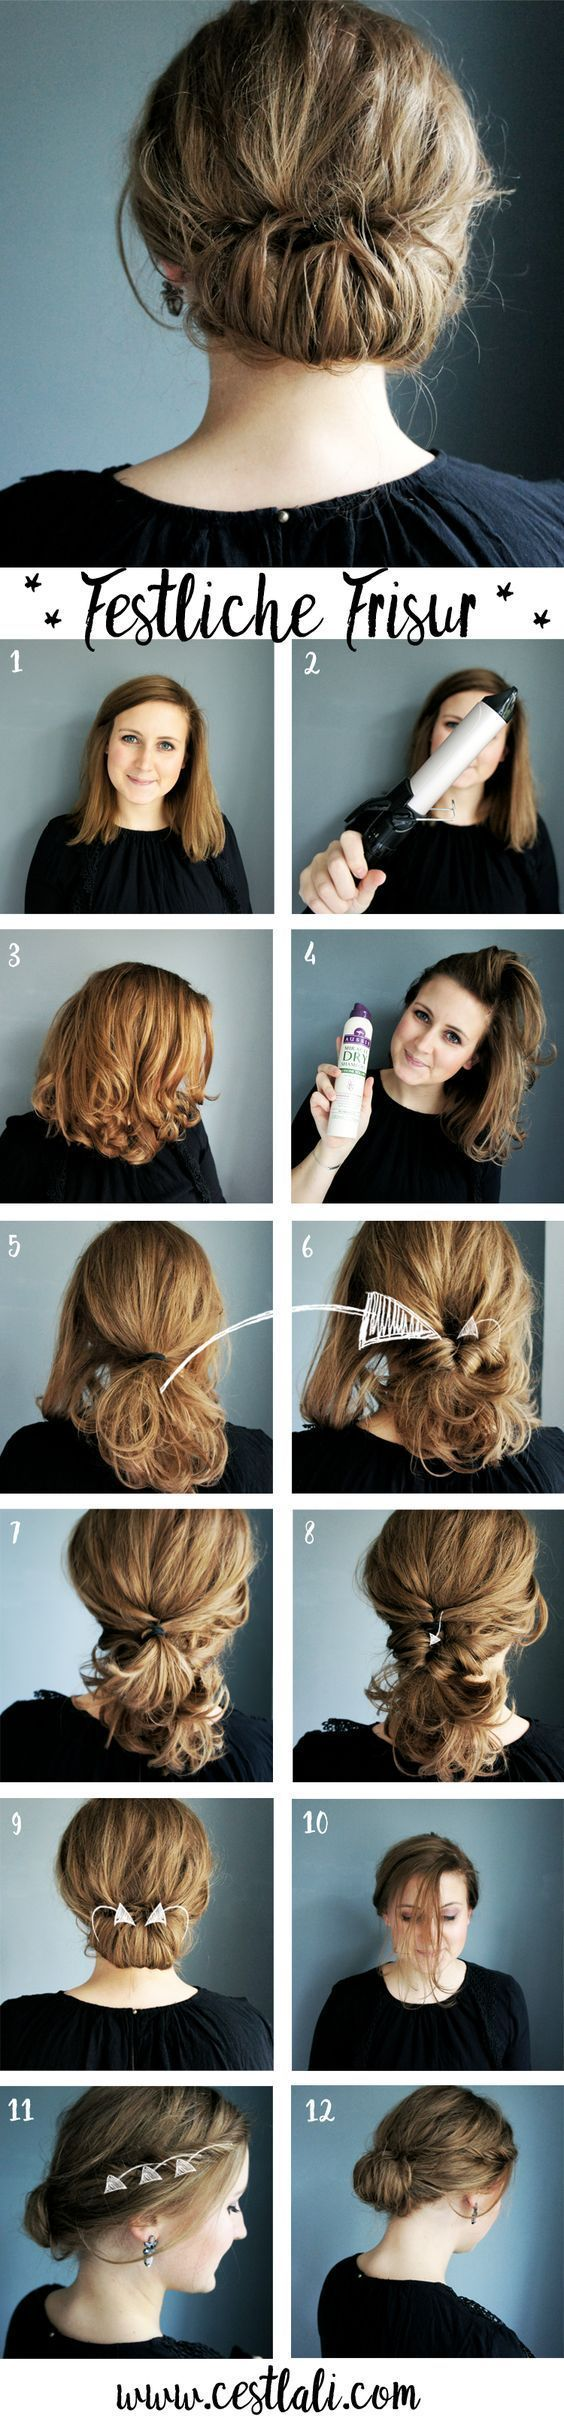 Festive hairstyle instructions Festive hairstyle instructions